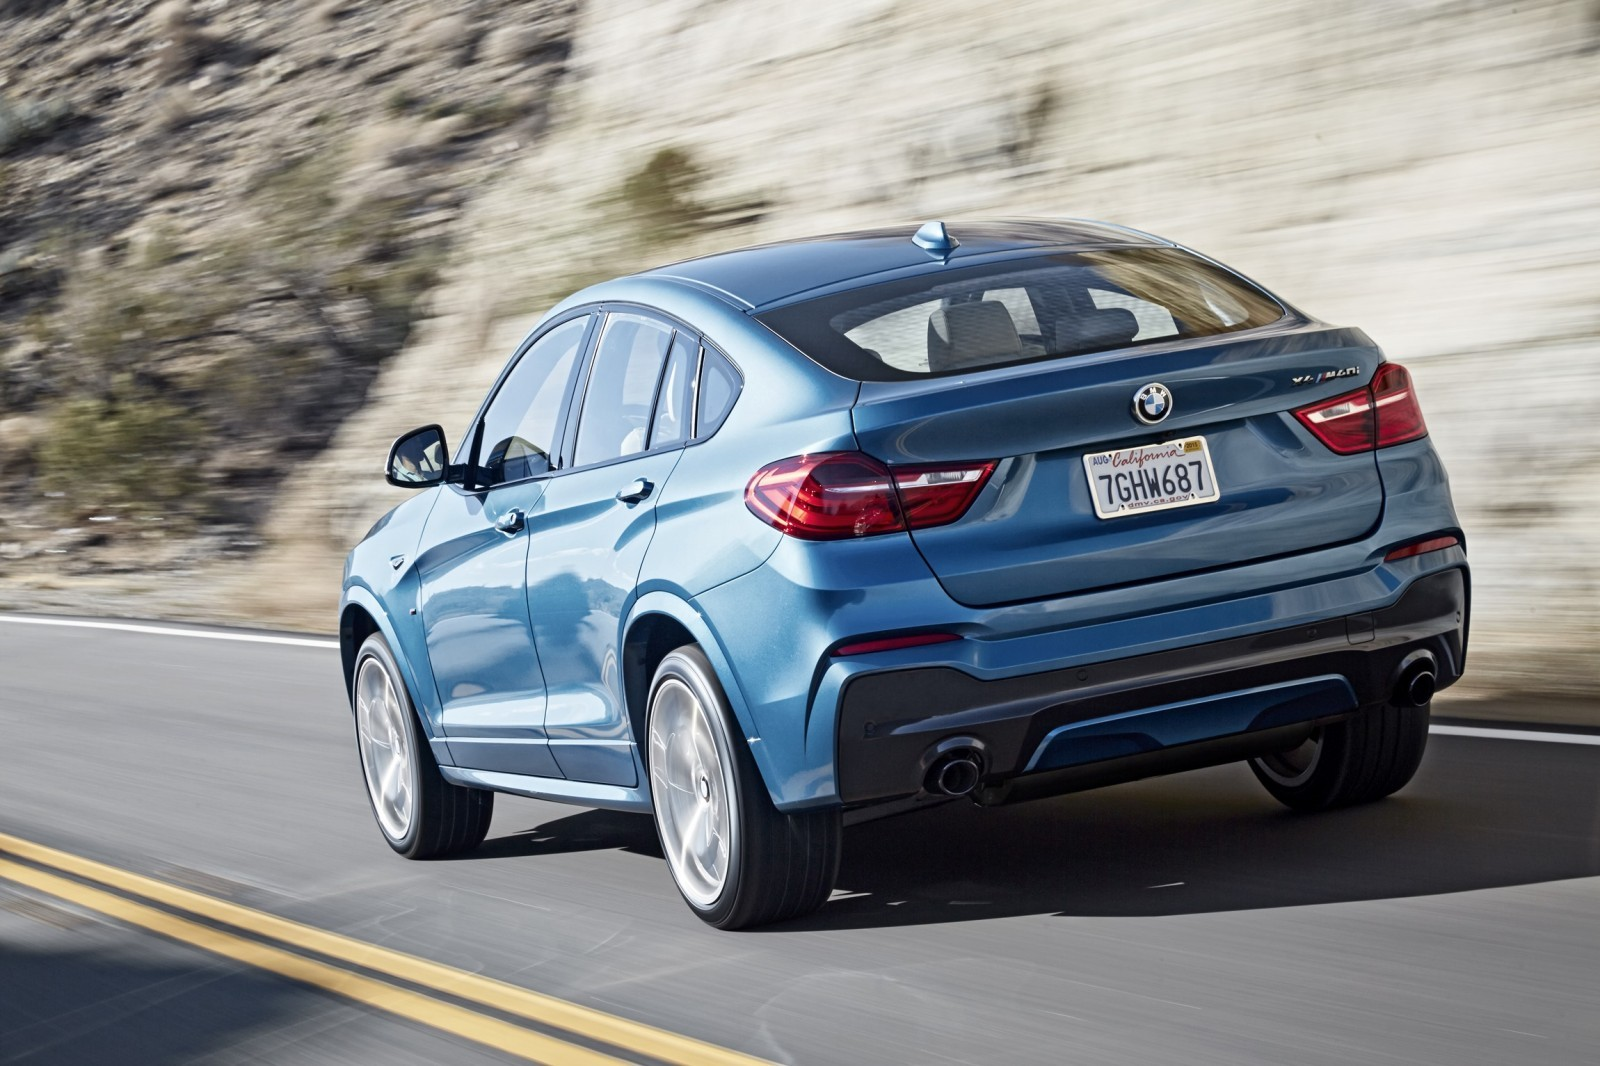 2016 bmw x4 m40i. Black Bedroom Furniture Sets. Home Design Ideas